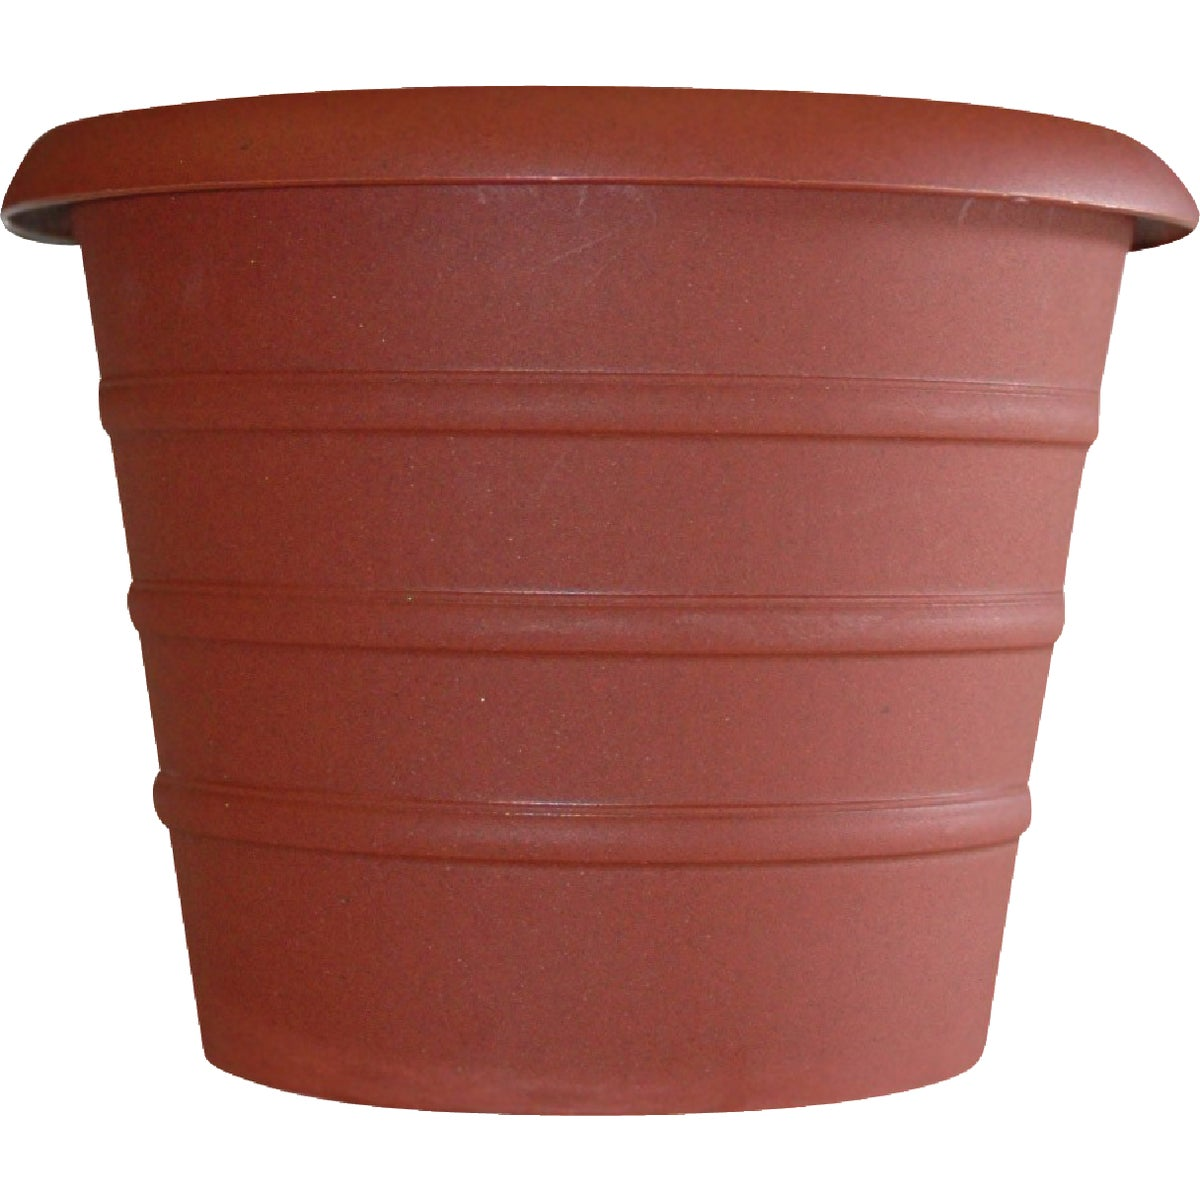 "12""T COTTA MARINA POT"